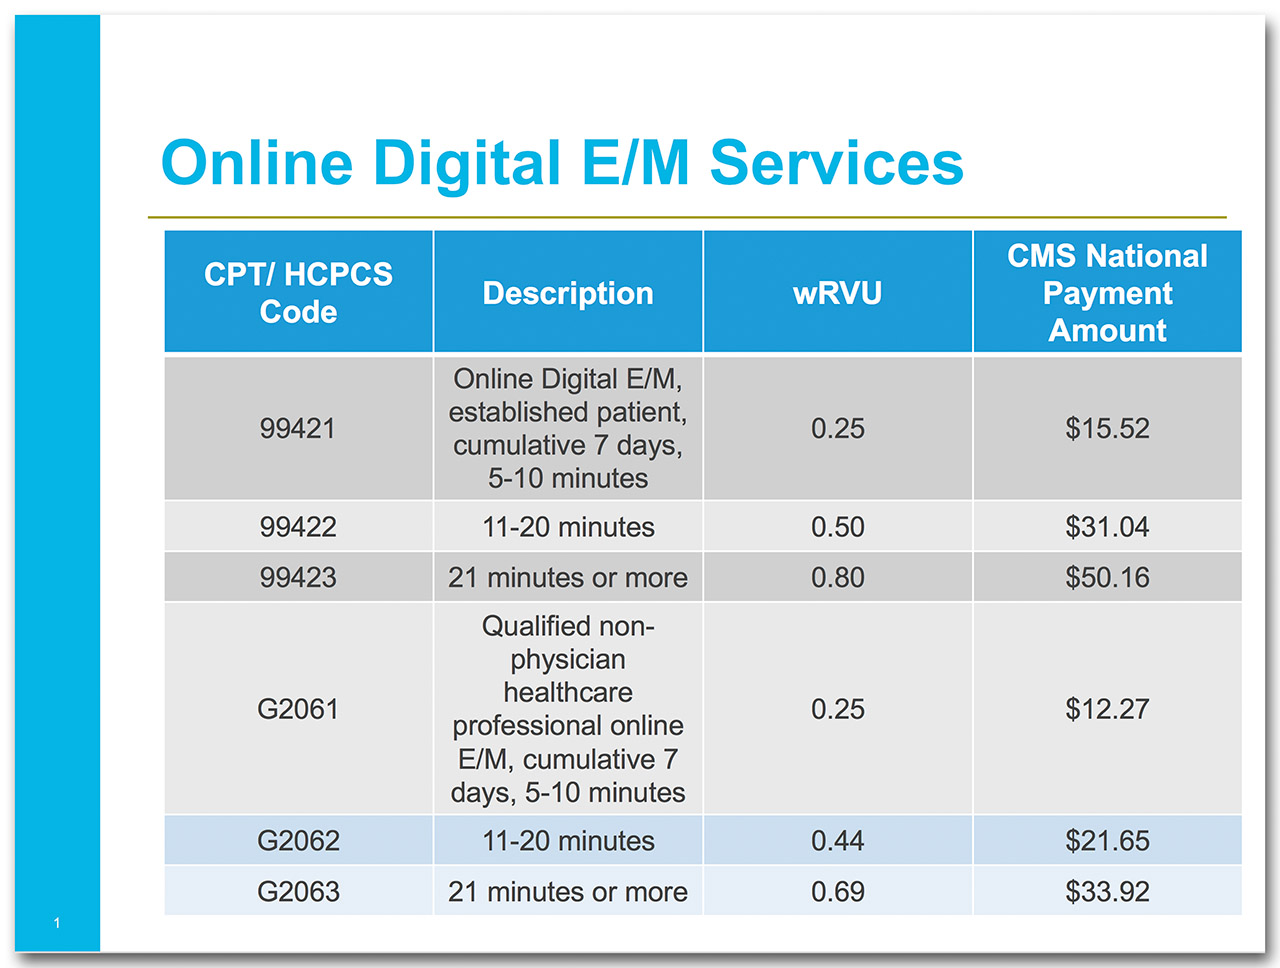 Online Digital E/M Services_1280